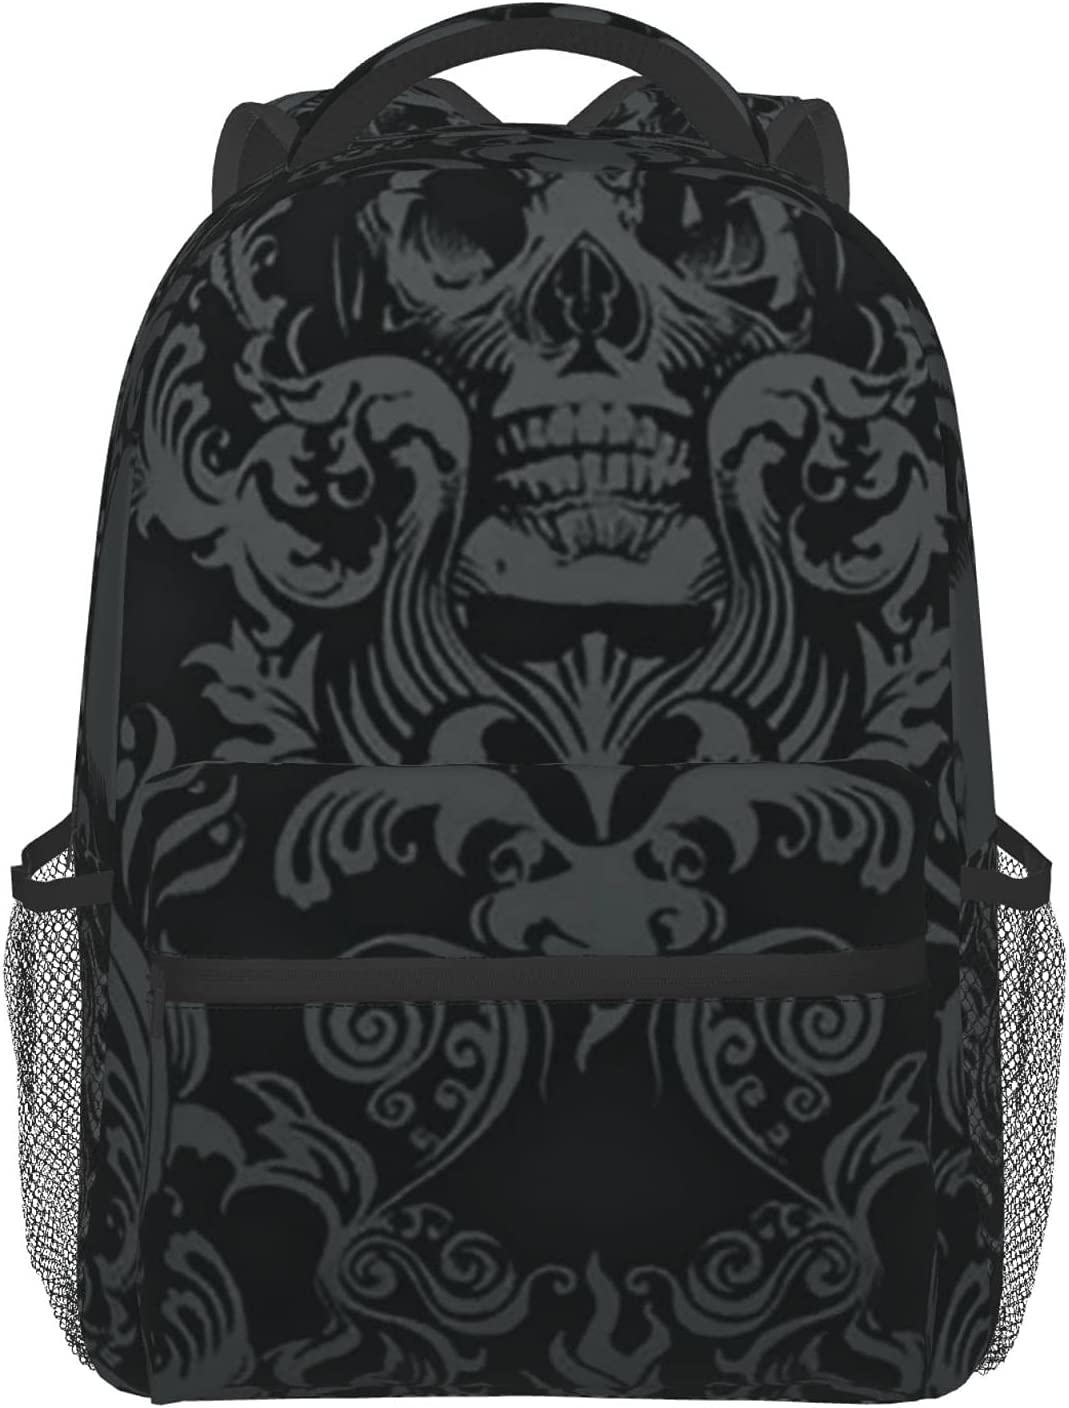 The skull pattern 2 Full Very popular Schoolbag Print 100% polyester Athle supreme